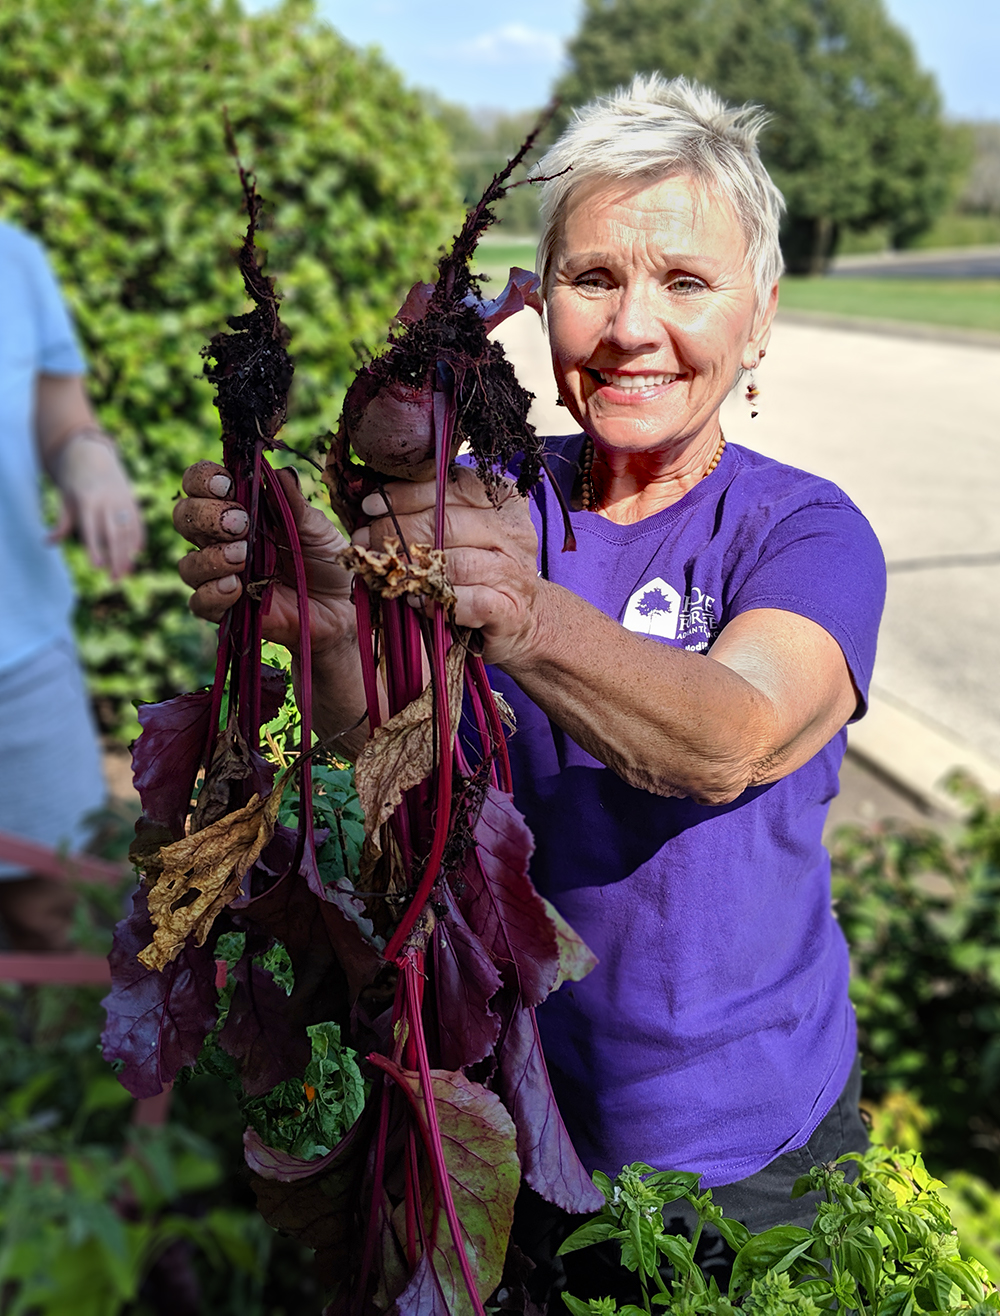 Owner Cindy Shaw holding beats grown in a raised gardening box